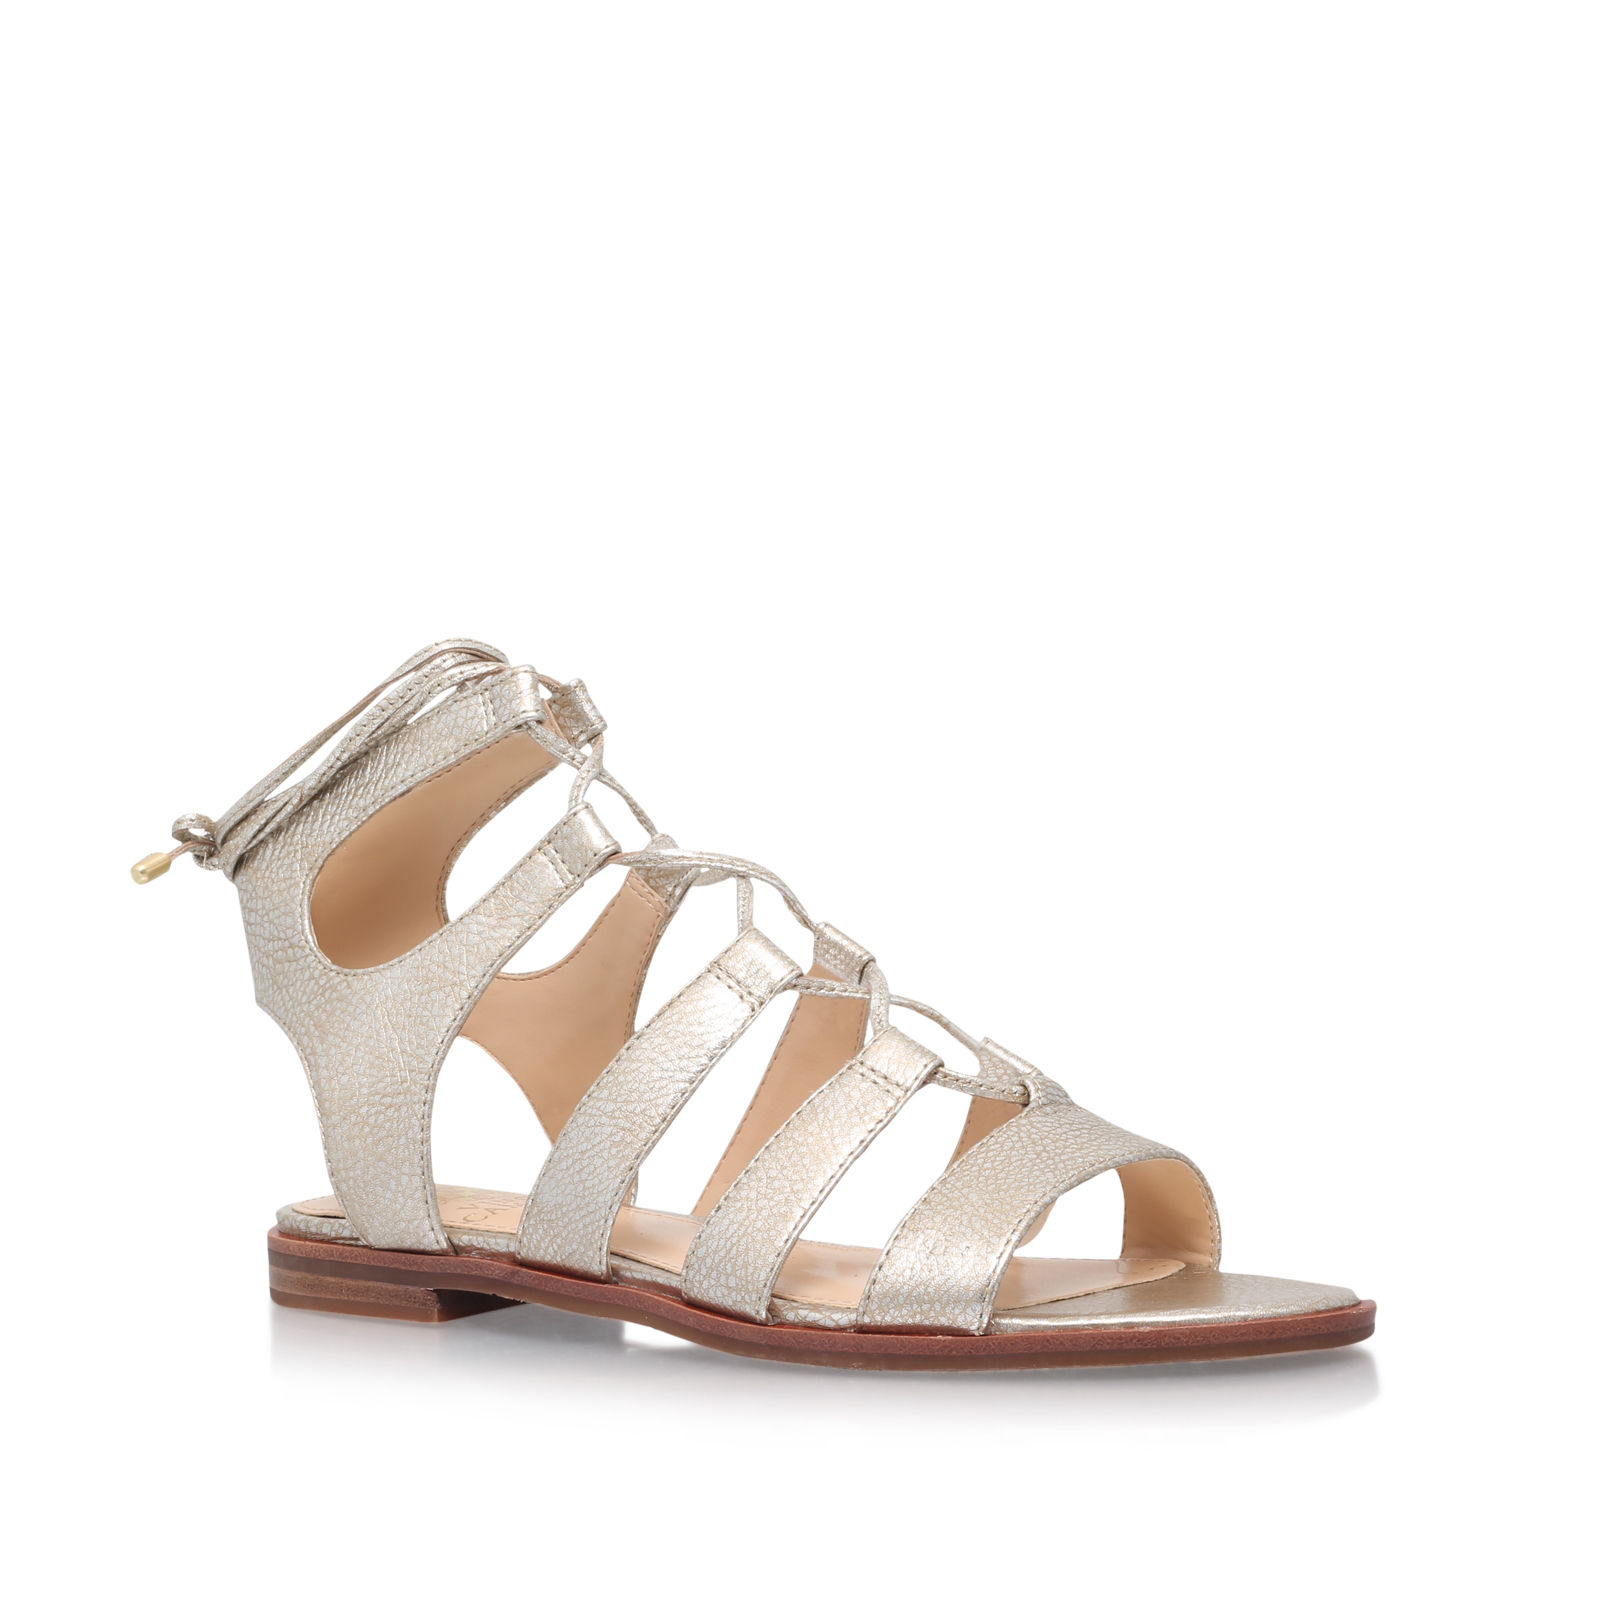 Vince Camuto Tany Gold Flat Sandals By Vince Camuto